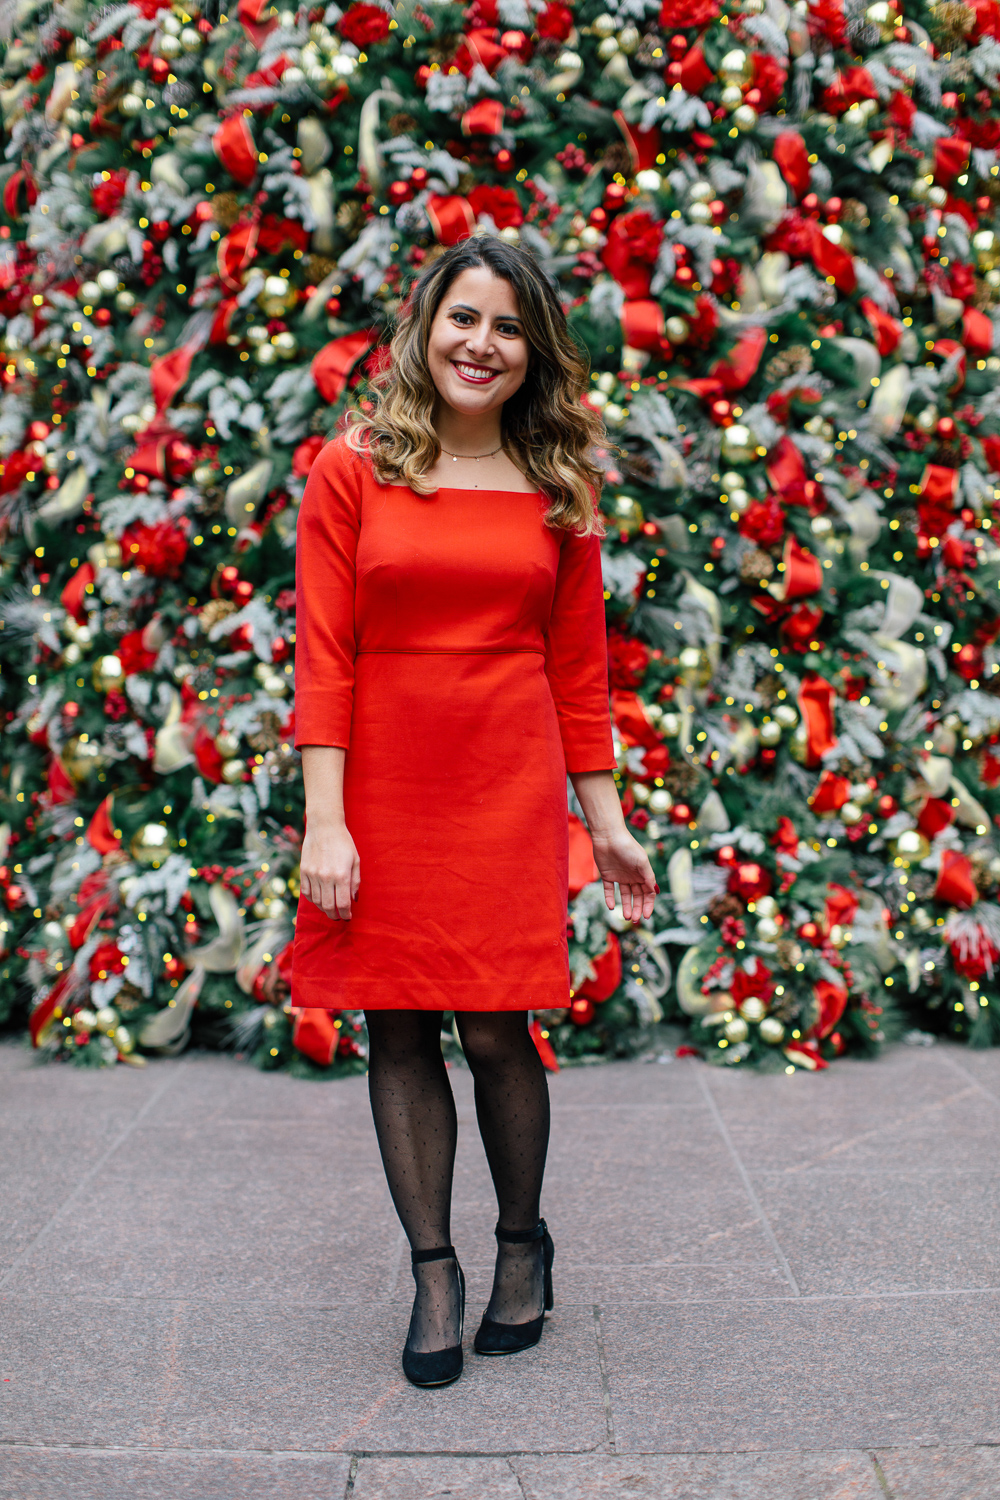 Classy Red Dress for the Holidays